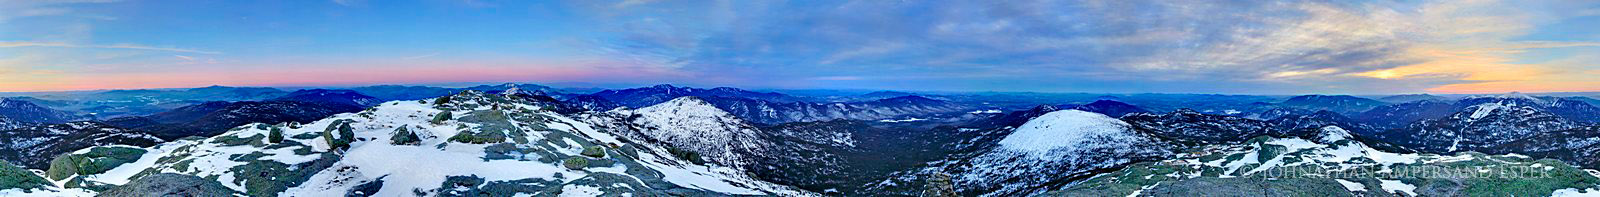 Mt Marcy,Mt. Marcy,winter,360�,360 degree,panorama,2011,summit,, photo